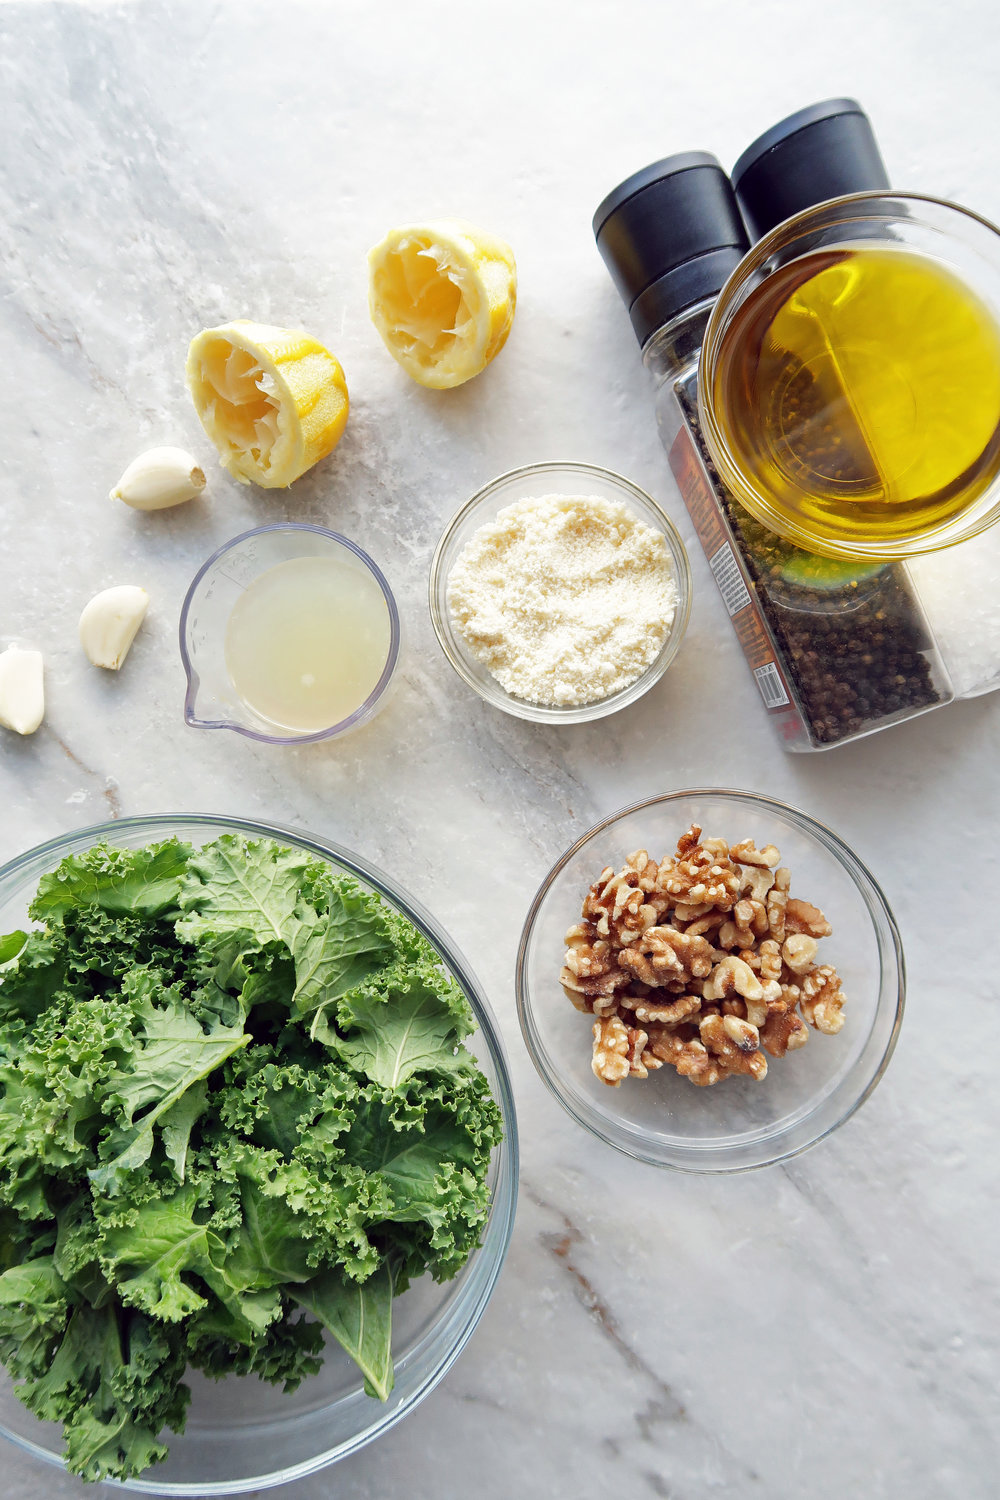 Bowls of kale, walnuts, olive oil, lemon juice, and parmesan cheese.